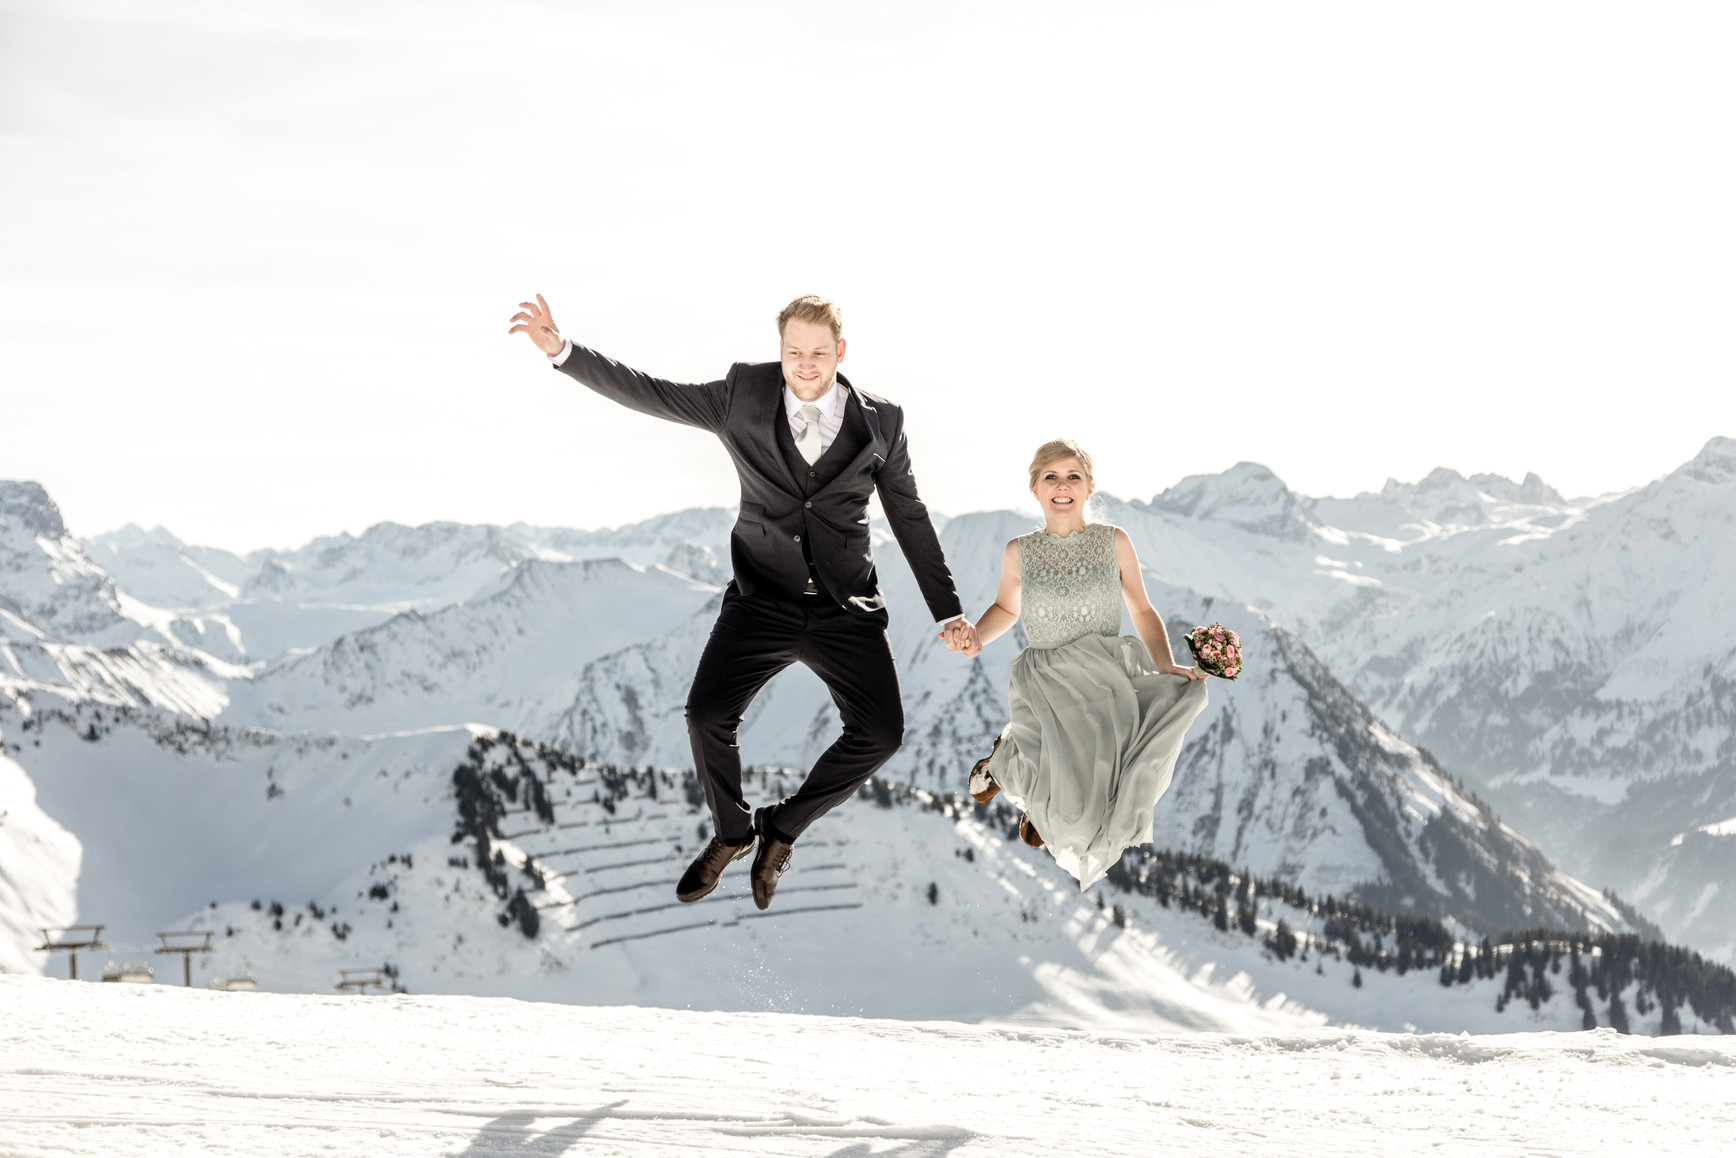 romantic Winterwedding in the Austrian Mountains  || Bohoray Adventure Wedding and Elopement Photos by Victoria Ruef || www.bohoray.com || Weddingphotographer Austria, Elopement Photographer Europe